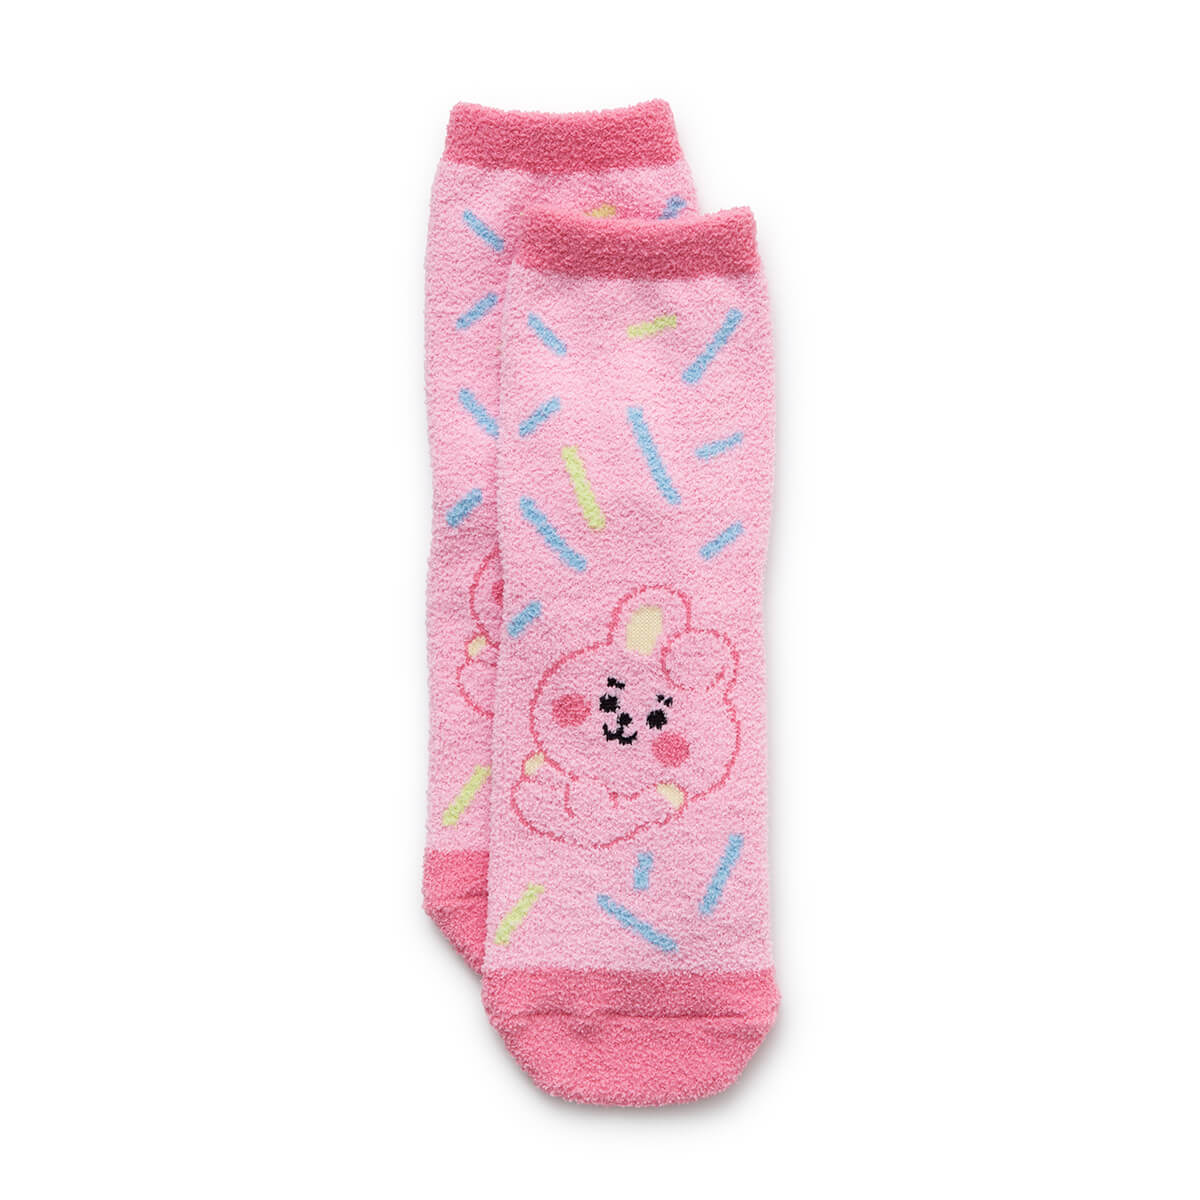 BT21 COOKY Baby Adult Sleep Socks 23-27cm